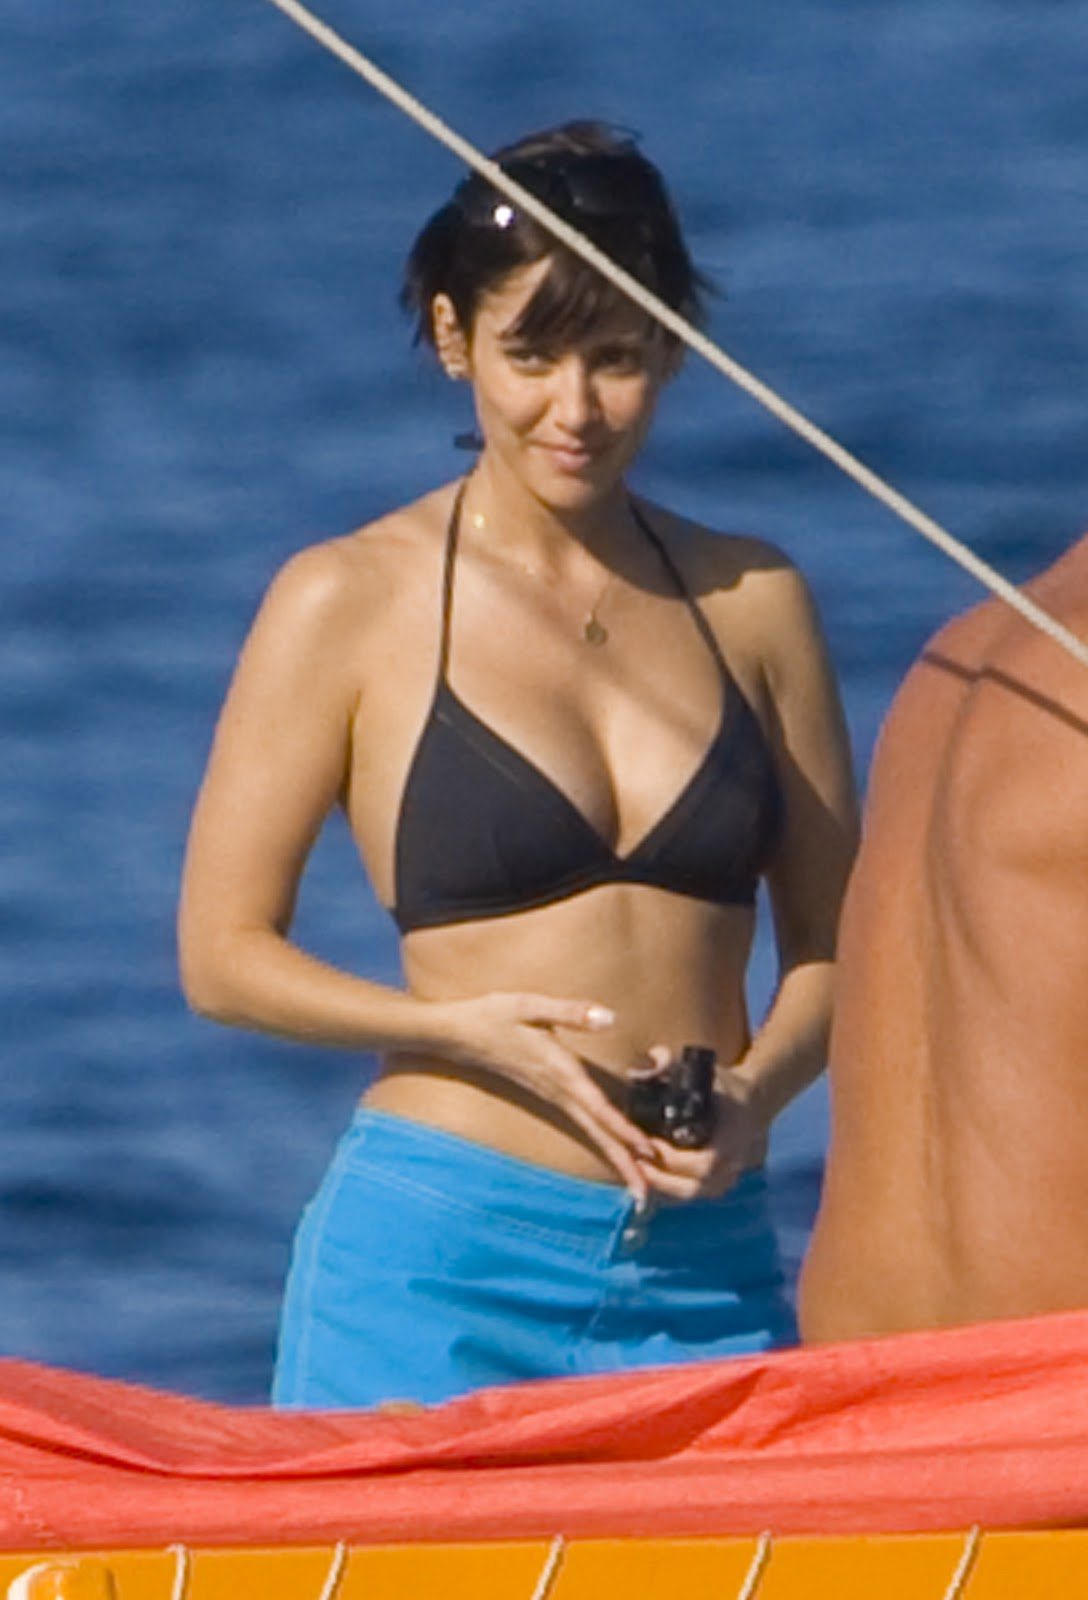 Celebrity Natalie Imbruglia naked (21 foto and video), Topless, Hot, Boobs, lingerie 2017